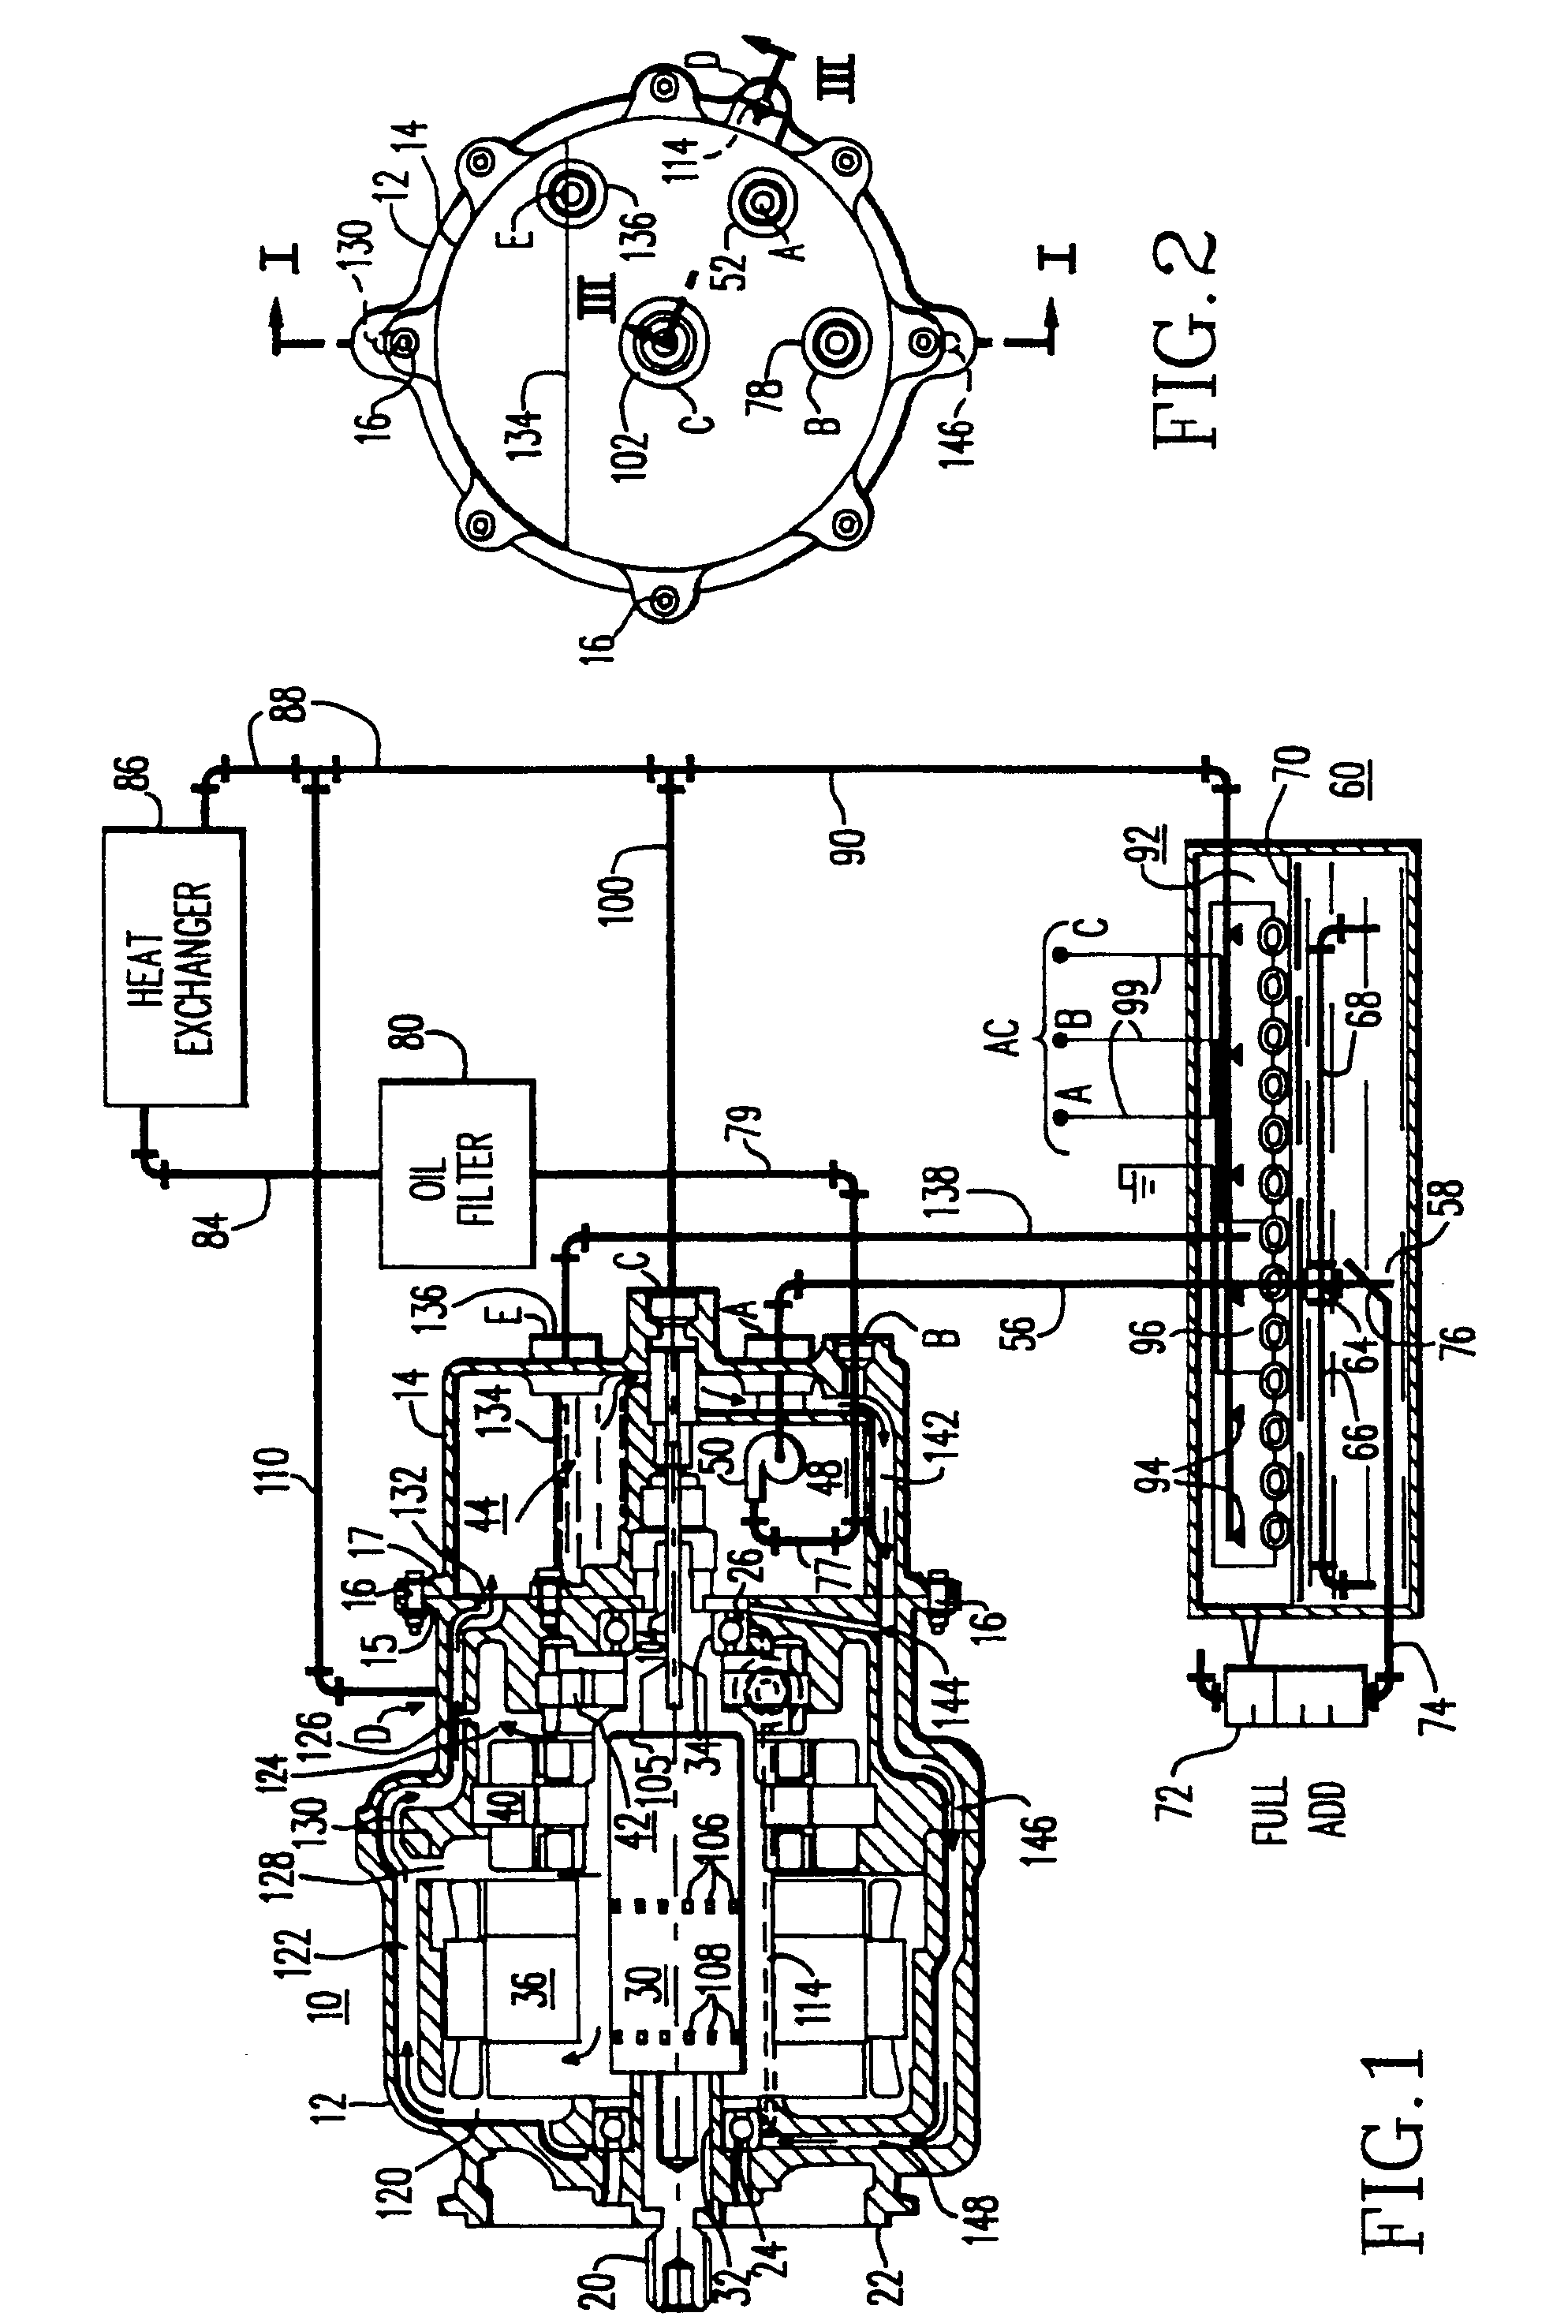 Cooling System ponents And Functions Wiring Diagram And